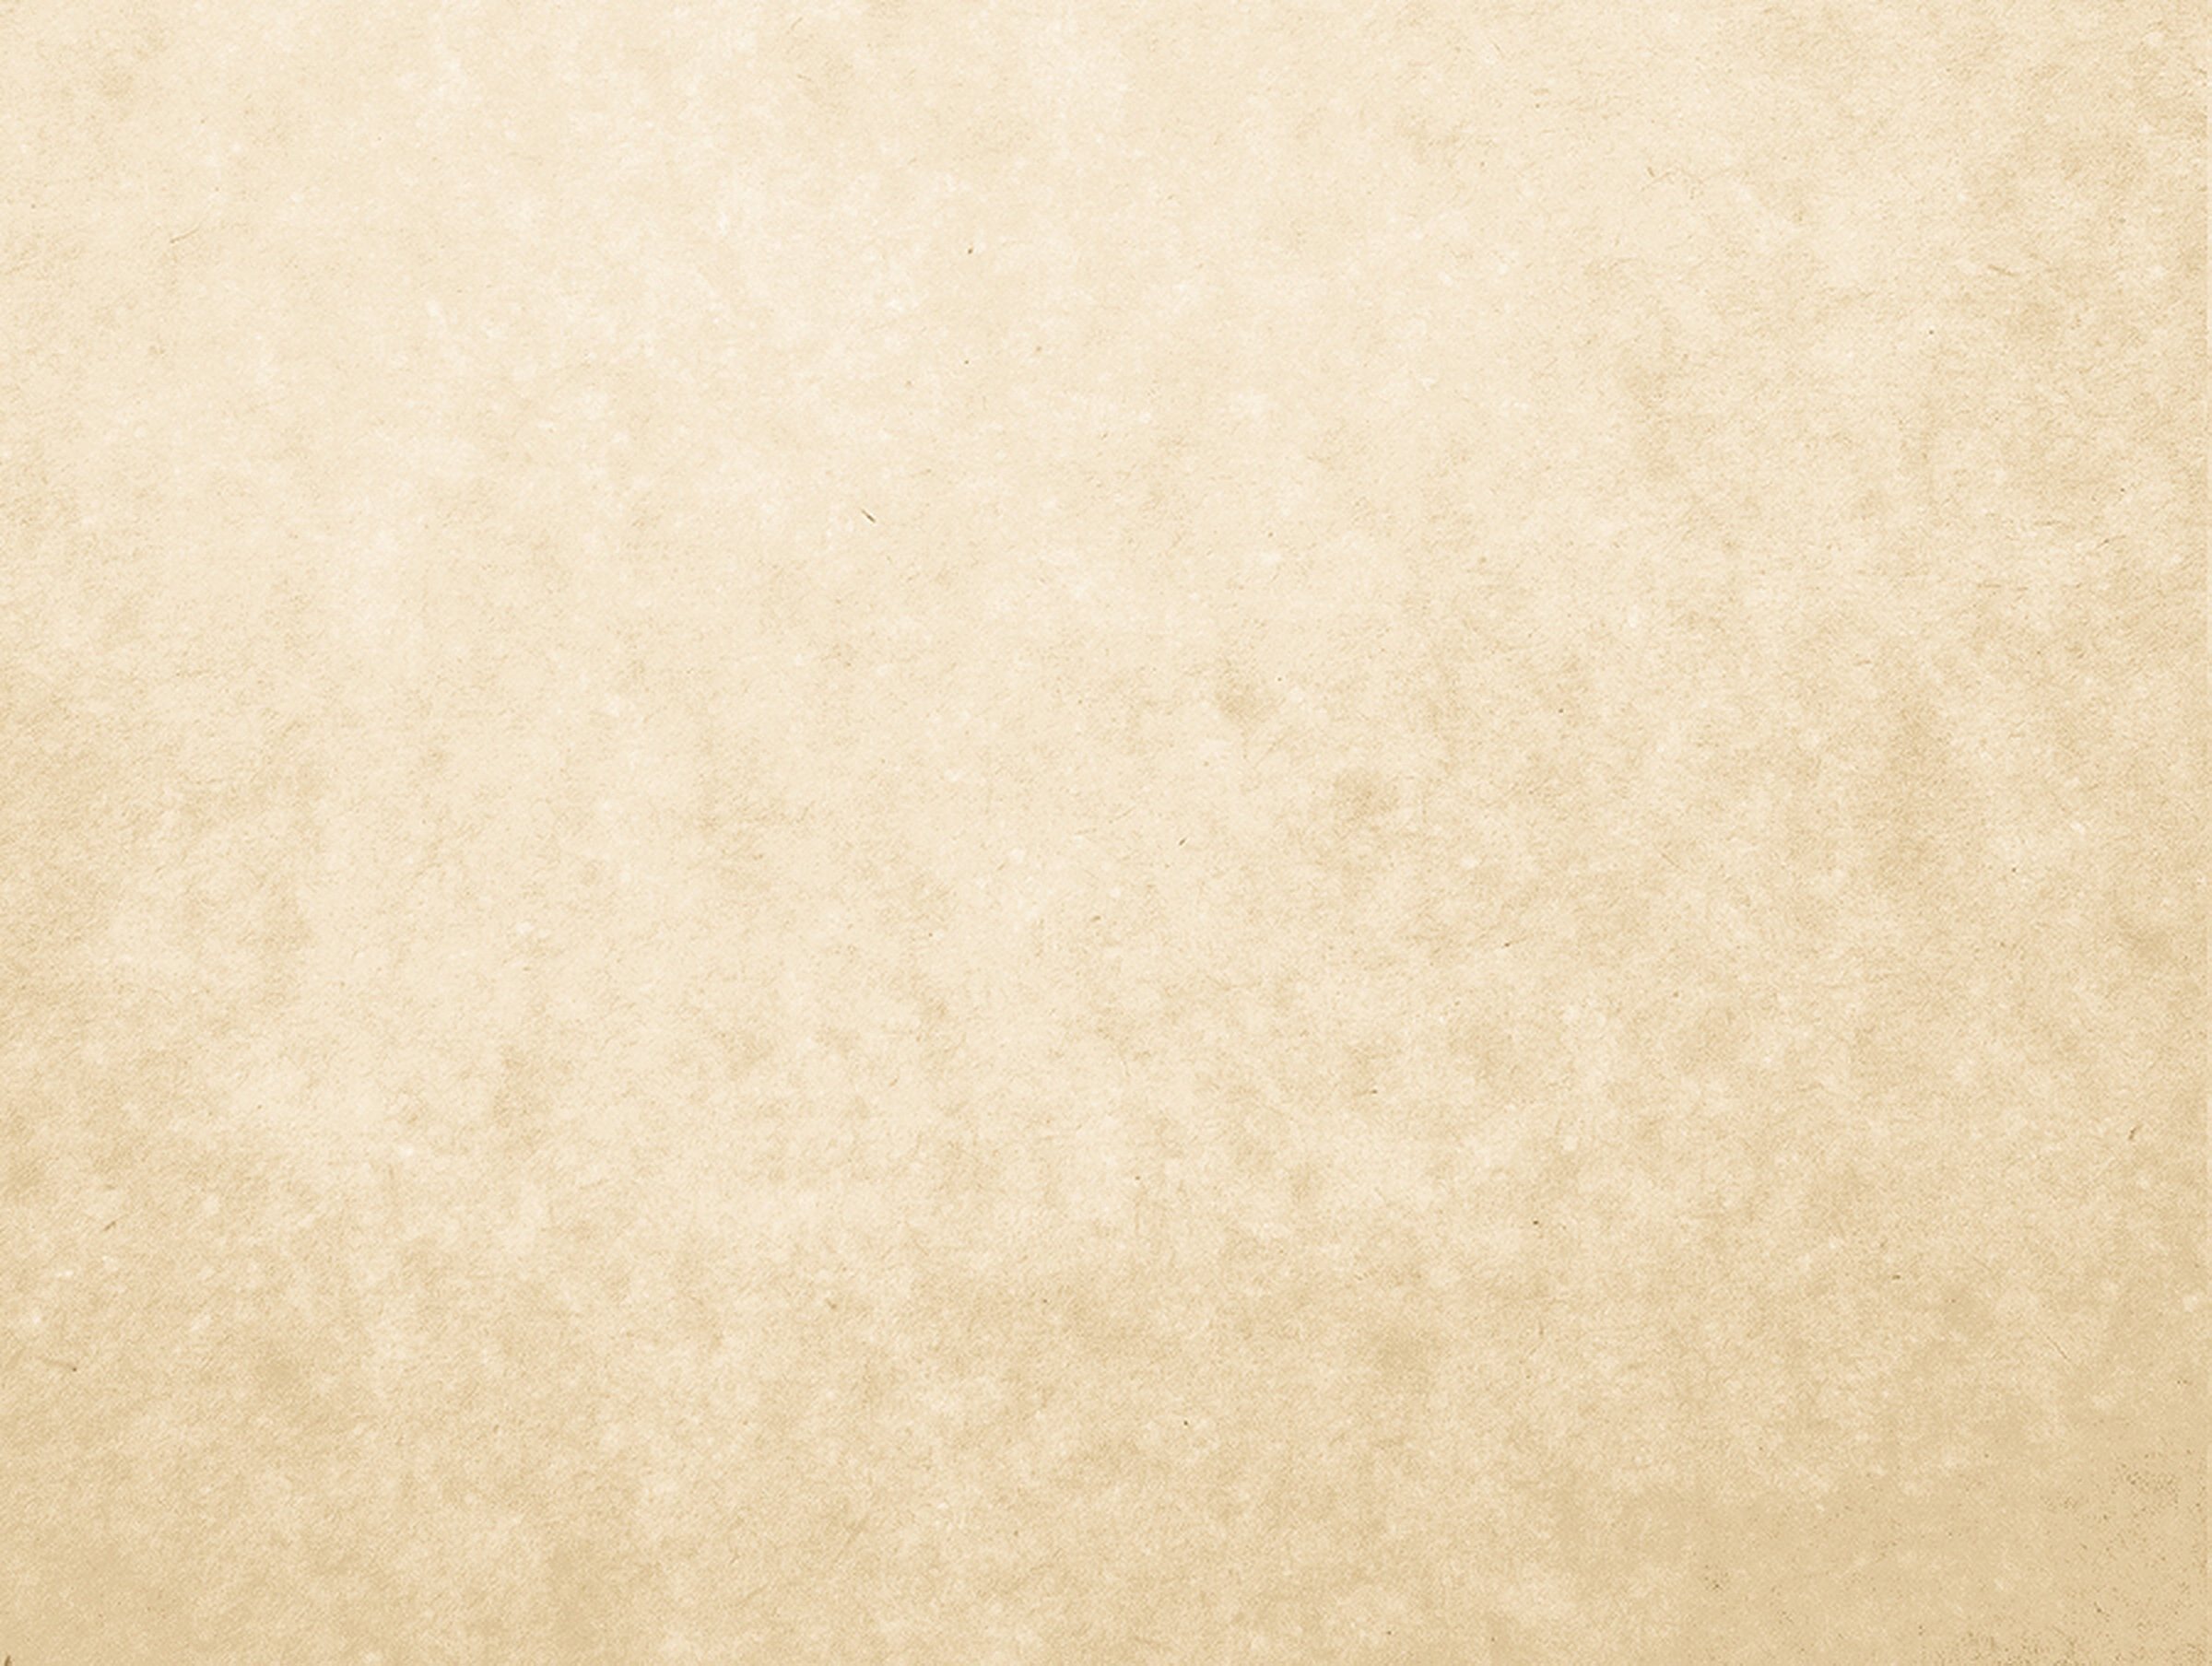 bigstock-old-paper-texture-26060042_resize – Village Green